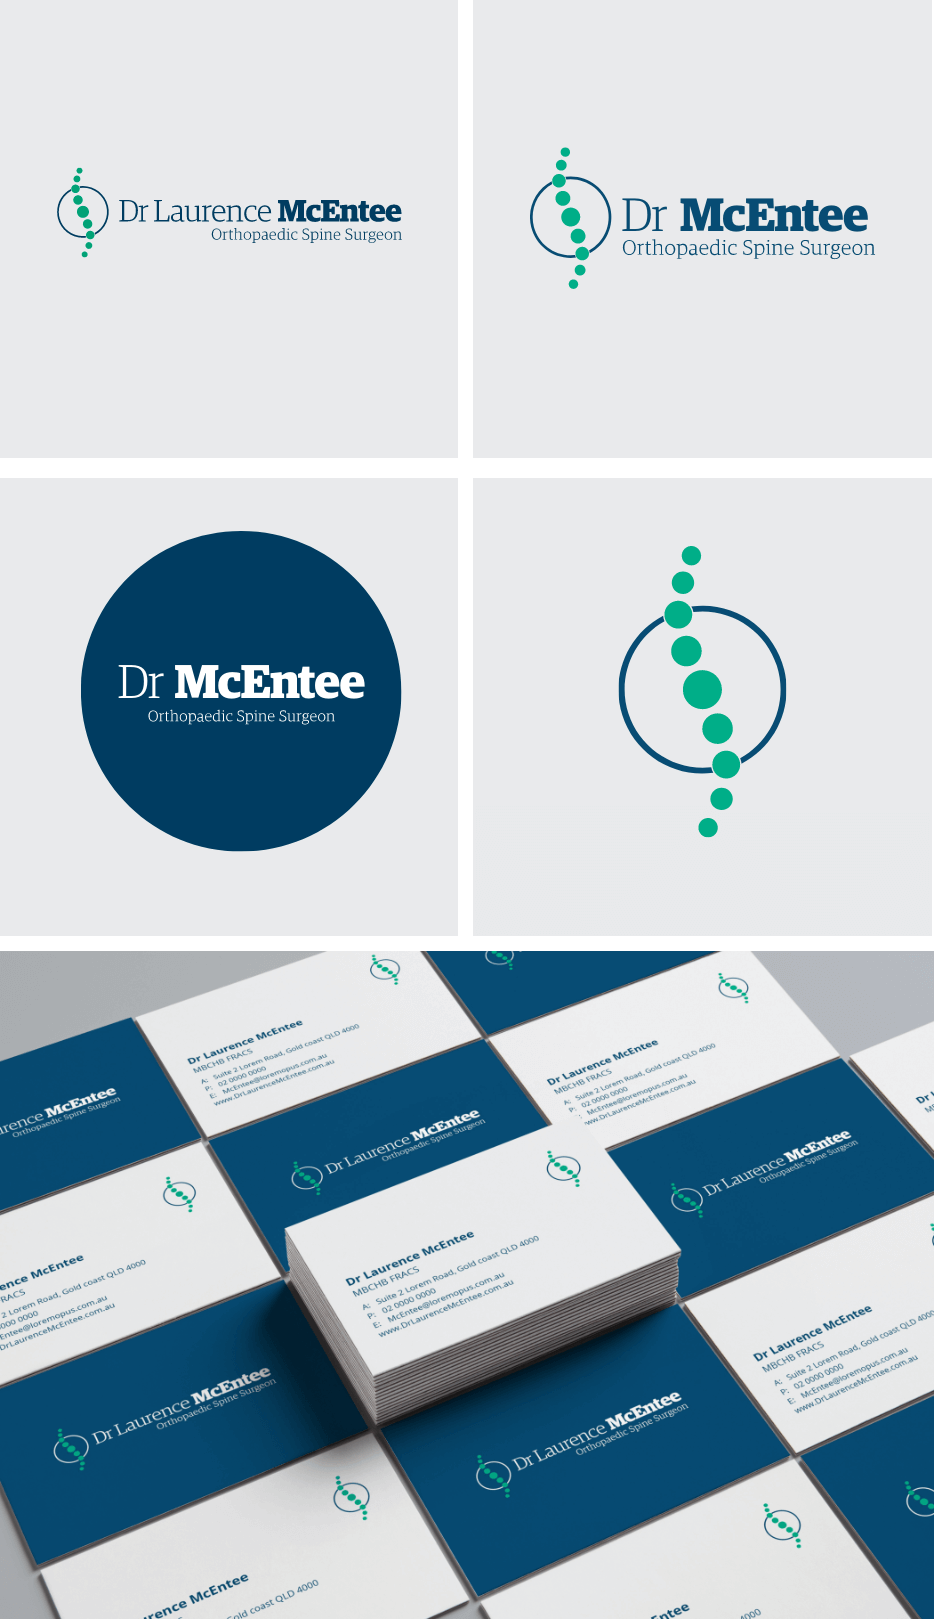 NEW brand identity – Just what the doctor ordered!